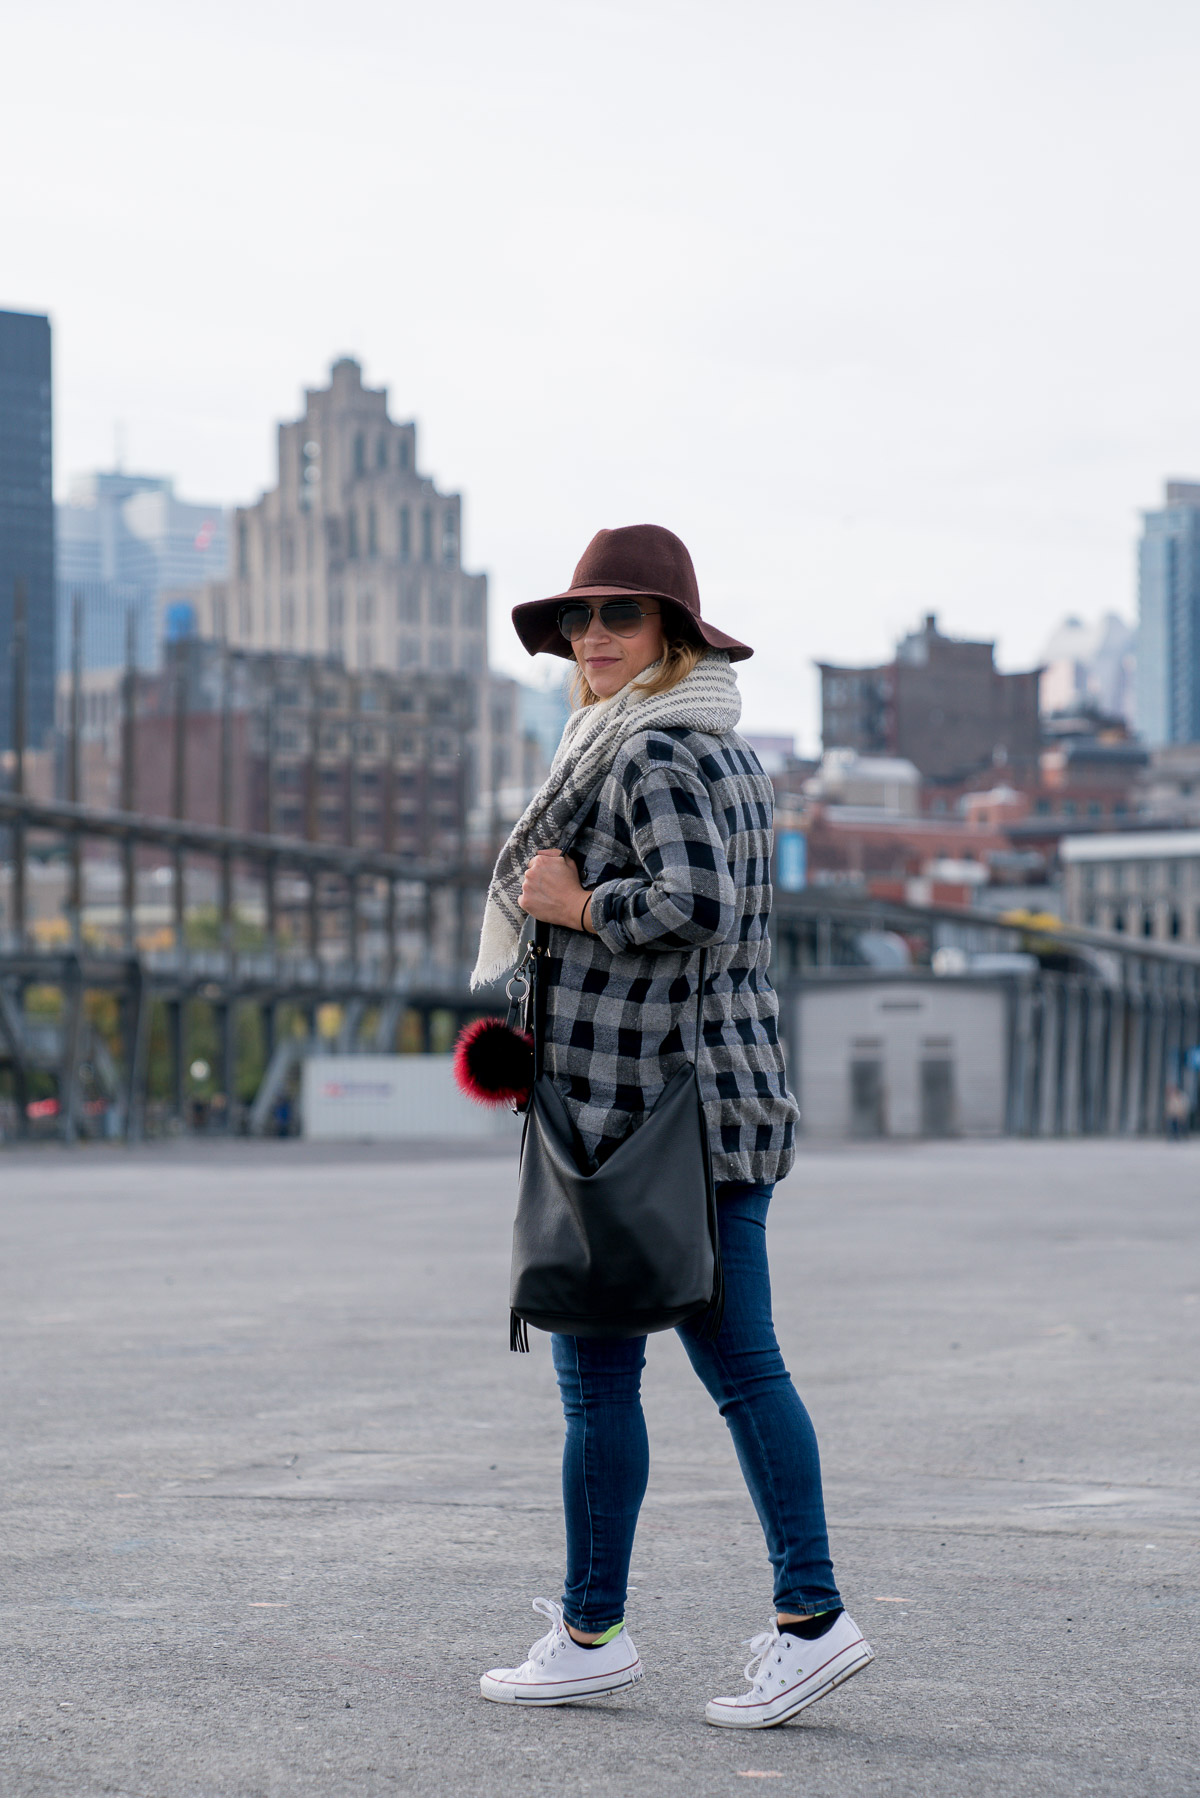 Mixing two kinds of plaid for an effortlessly cool fall outfit with jeans